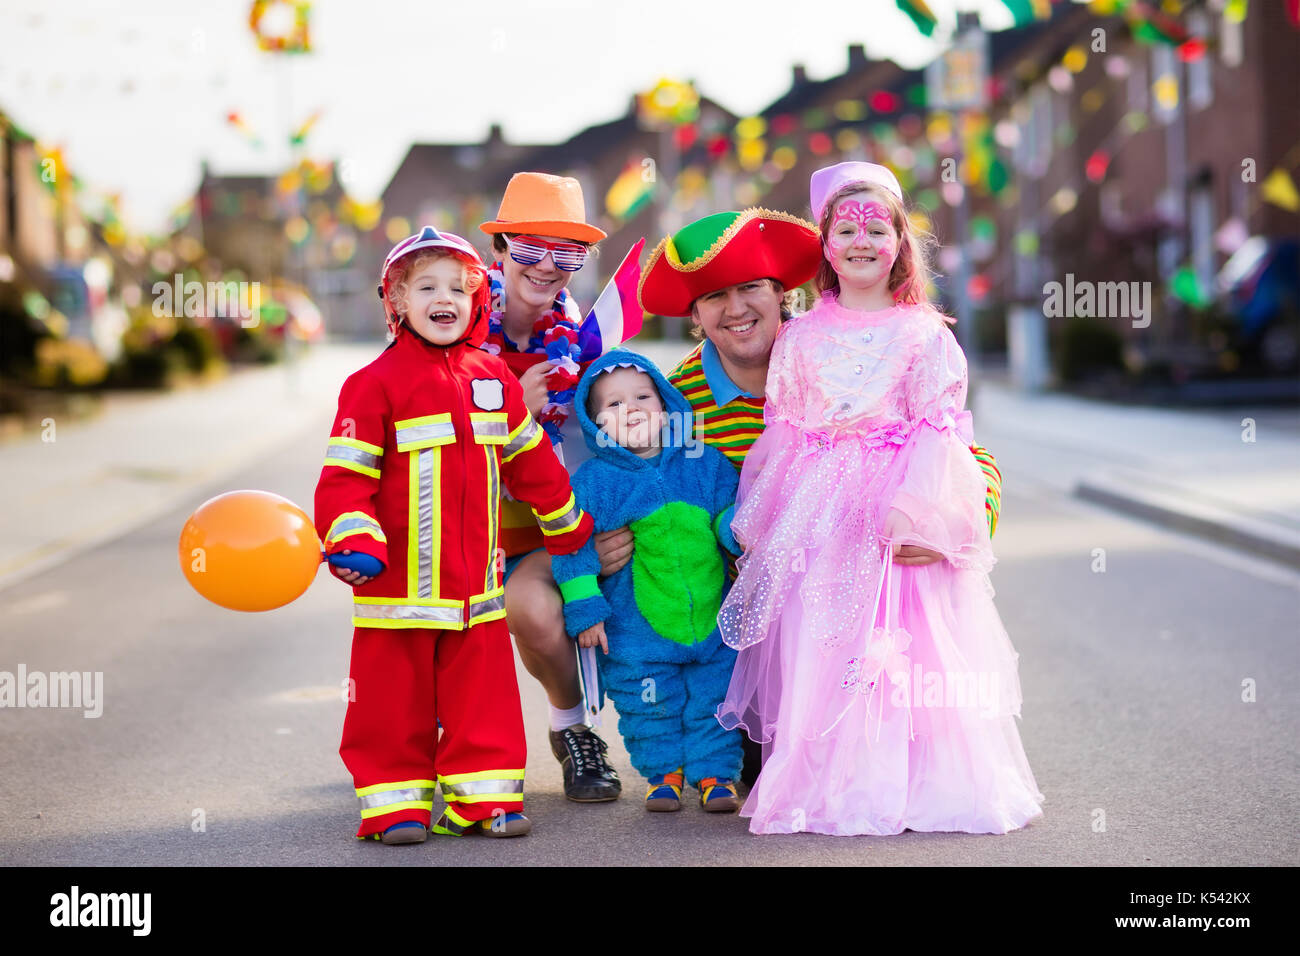 kids and parents on halloween trick or treat family in halloween costumes with candy bags walking in decorated street trick or treating baby and pre